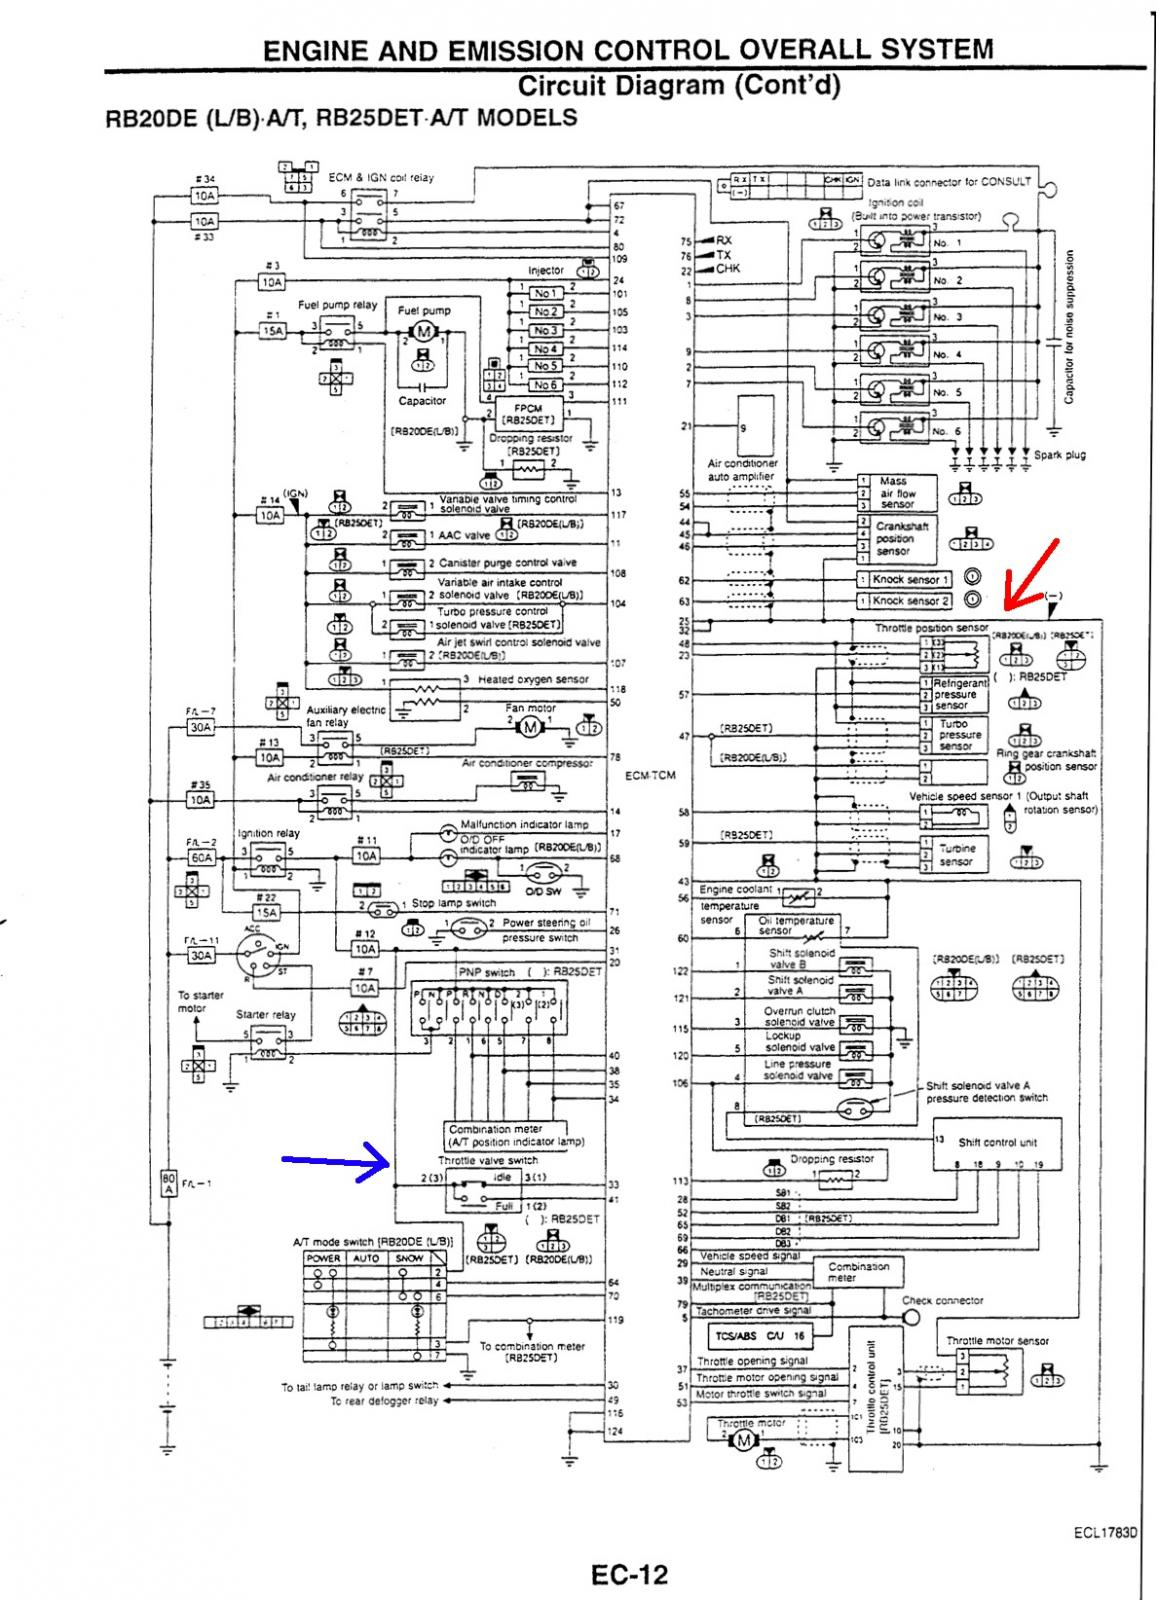 diagram] nissan ga15de wiring diagram full version hd quality wiring diagram  - tusdiagramas.address-match.fr  tusdiagramas.address-match.fr